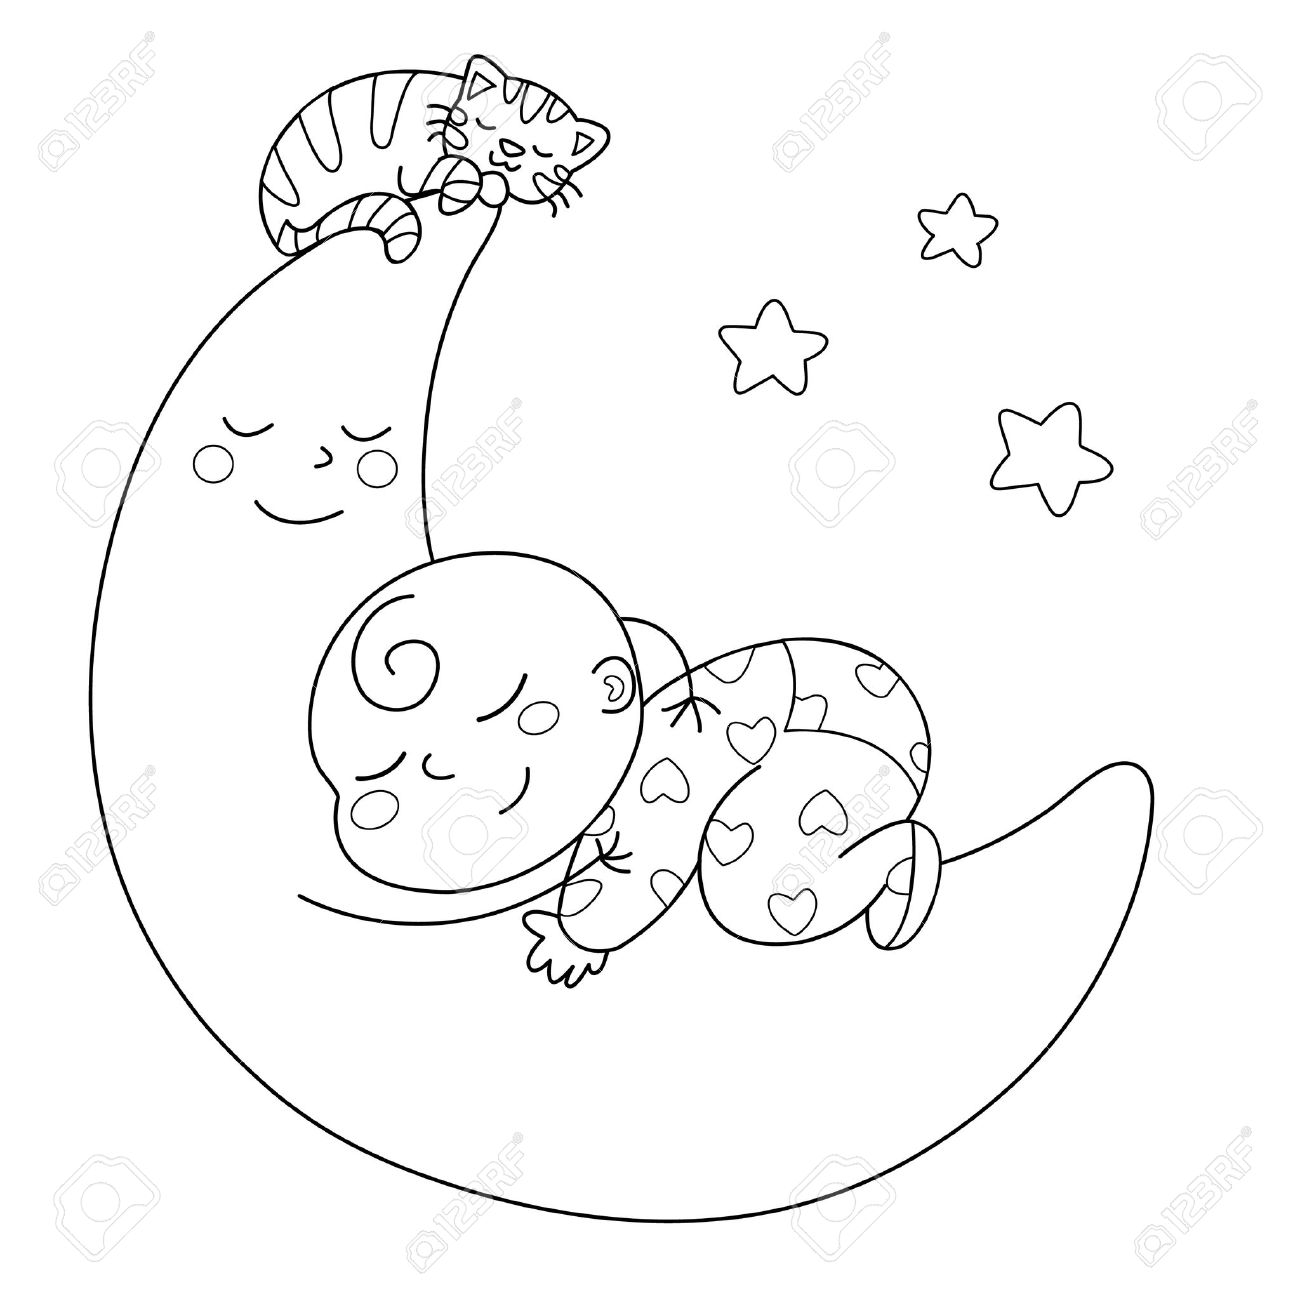 A Cute Baby Sleeping On The Moon. Black And White Illustration.